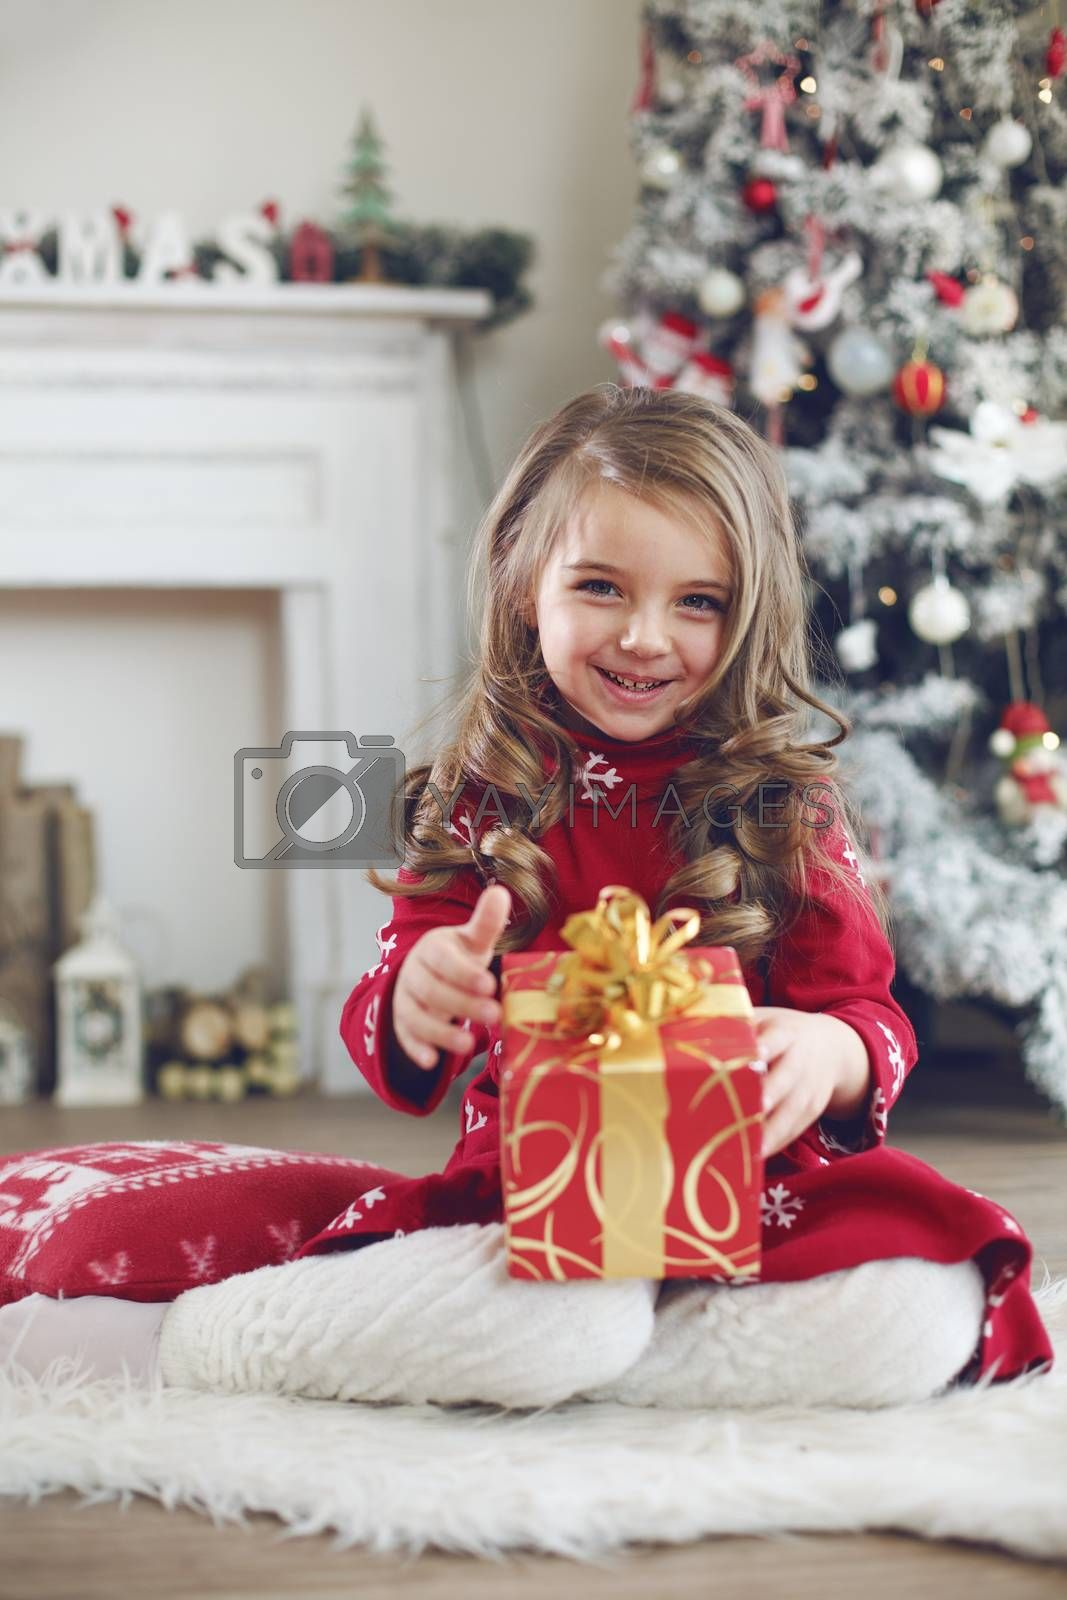 5 years old little girl receives present from Santa Claus near Christmas tree in morning at home